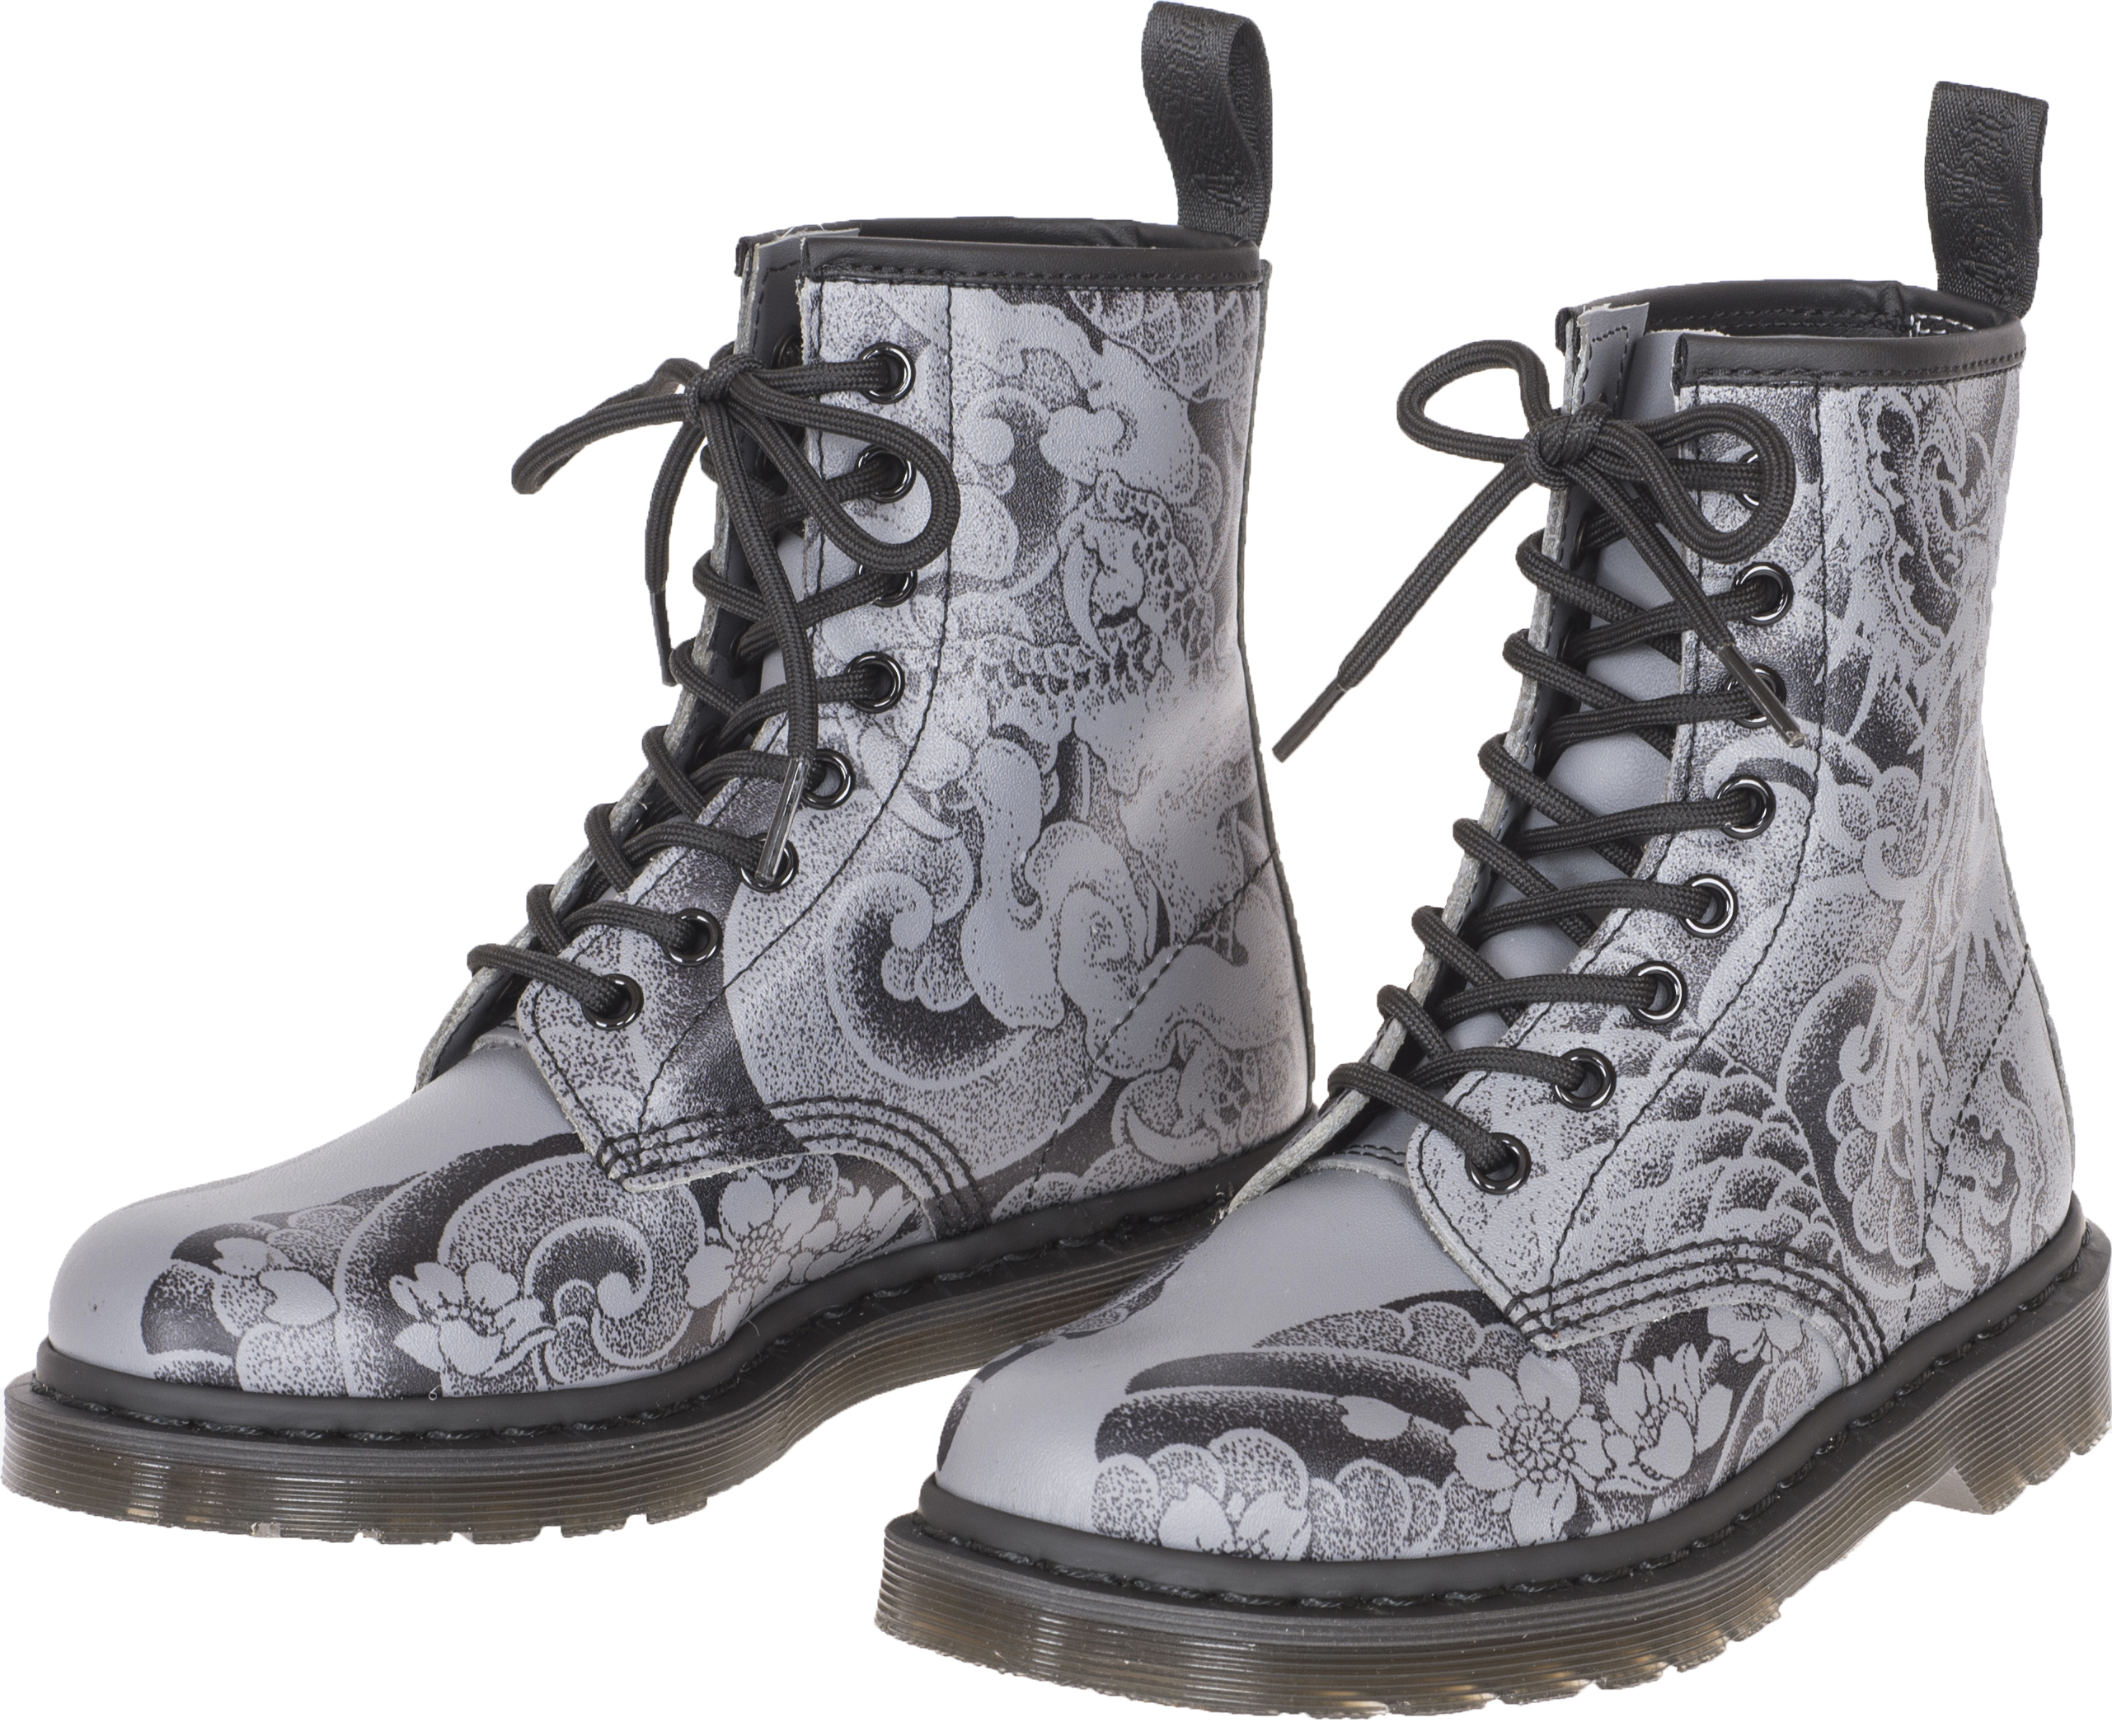 News and entertainment: doc martens (Jan 01 2013 13:51:42)